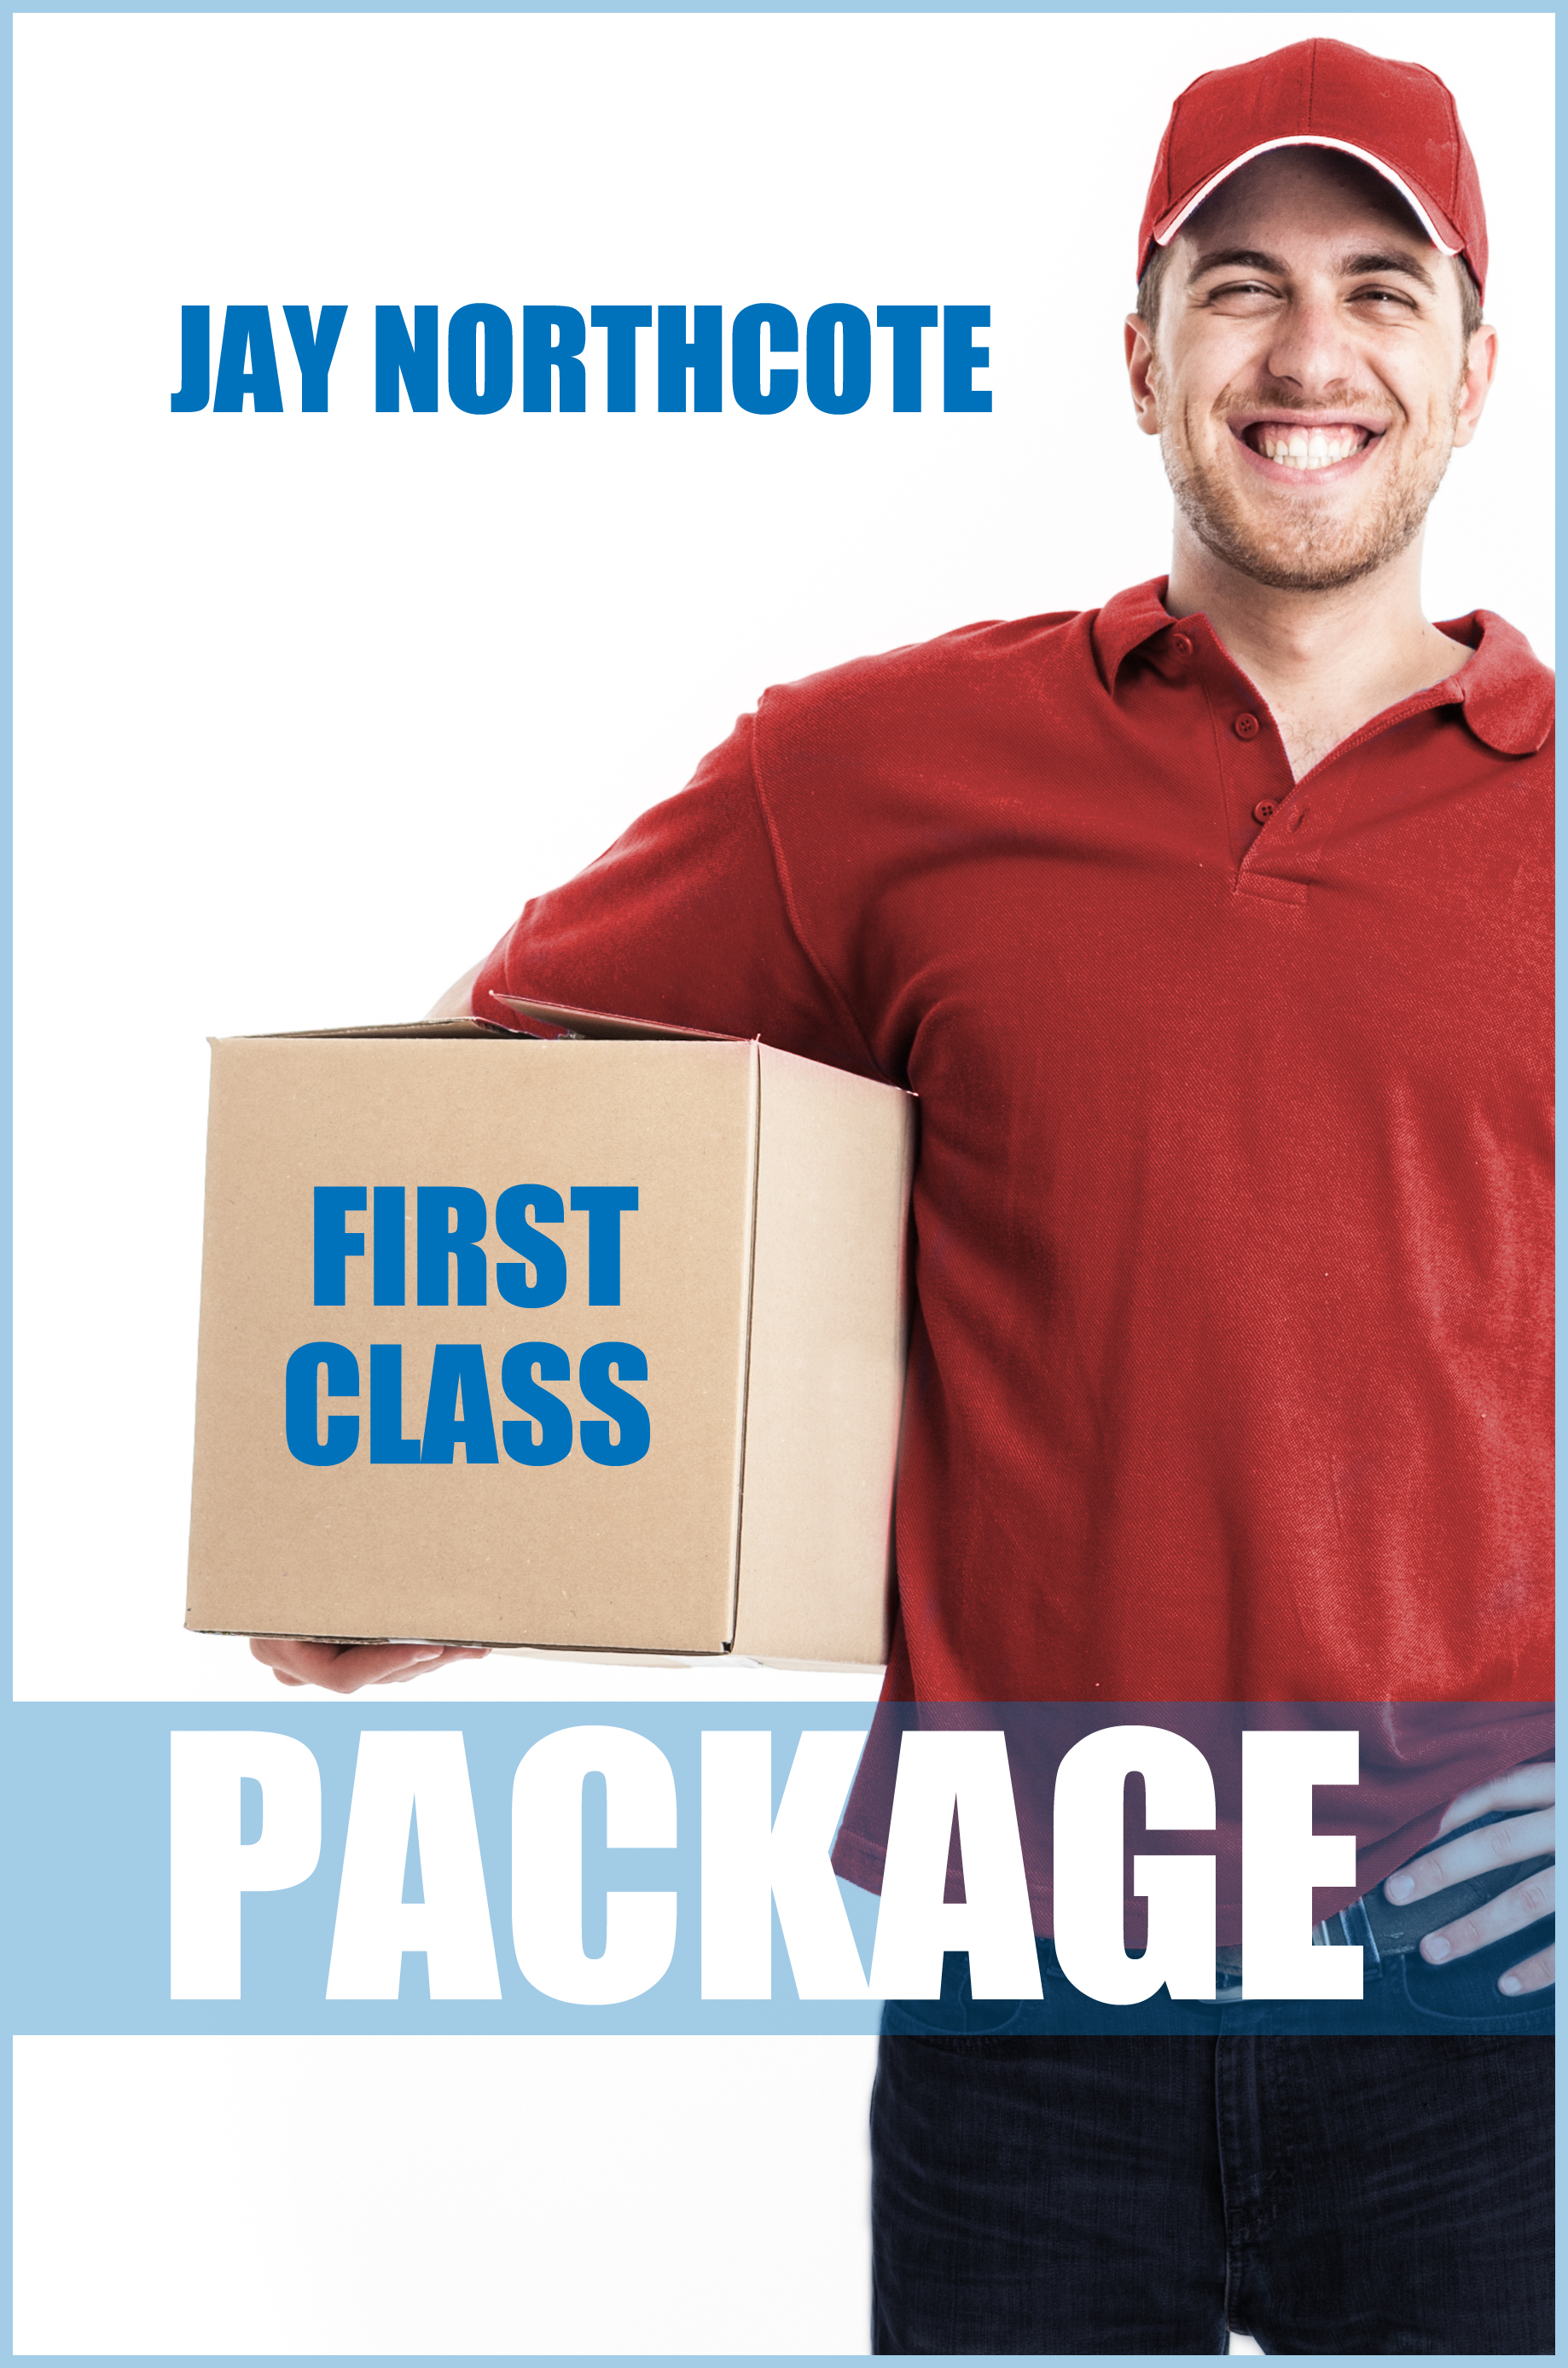 Image result for first class package jay northcote